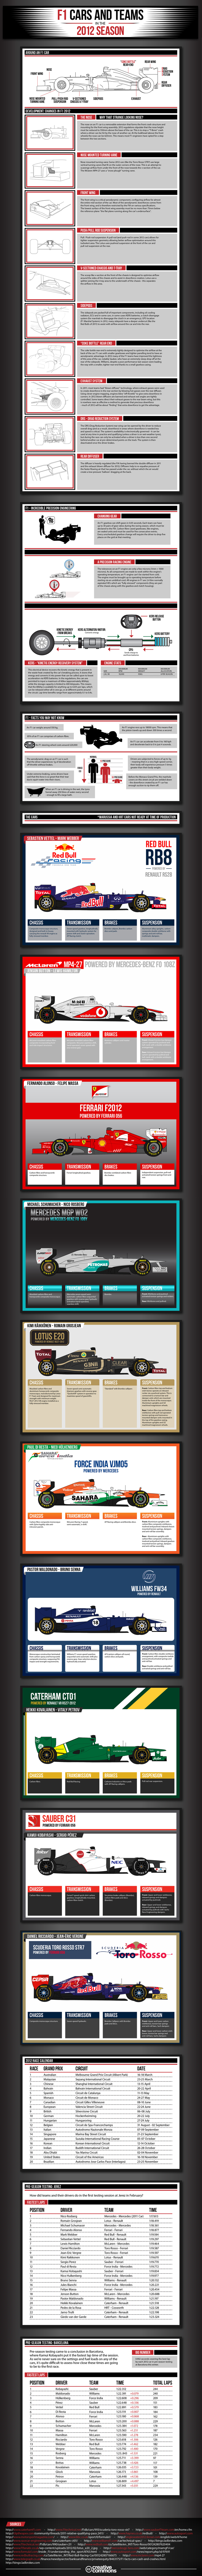 F1 Infographic Web.png